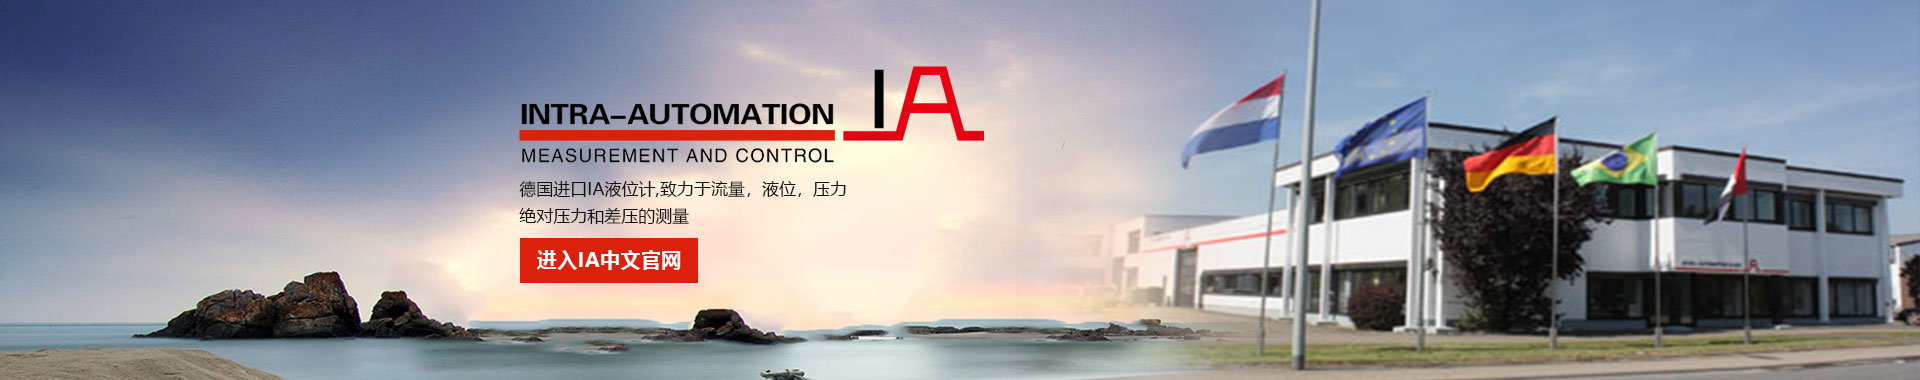 http://www.intra-automation.cn